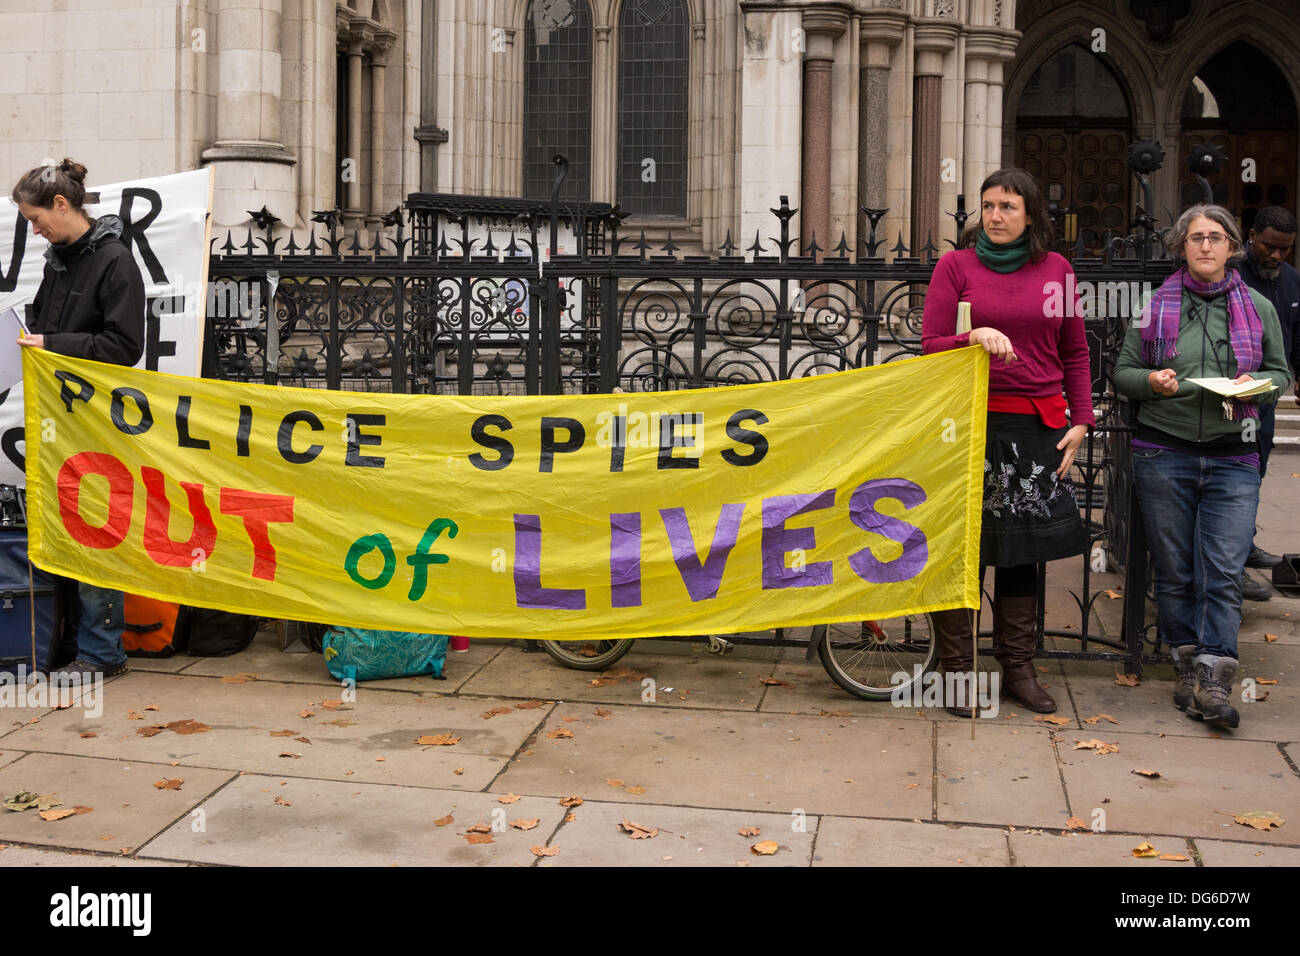 London, UK. 15th October 2013. Supporters of women taking legal action over the actions of police spies including Mark Kennedy and Marco Jacobs, picket outside the Court of Appeal, Royal Courts of Justice in London. The women, who unknowingly had relationships with undercover police infiltrating political movements during a period spanning from 1987 to 2011 are seeking to overturn a decision which directed that human rights legal actions over undercover police relationships should be heard in a secret court. Credit:  Patricia Phillips/Alamy Live News - Stock Image